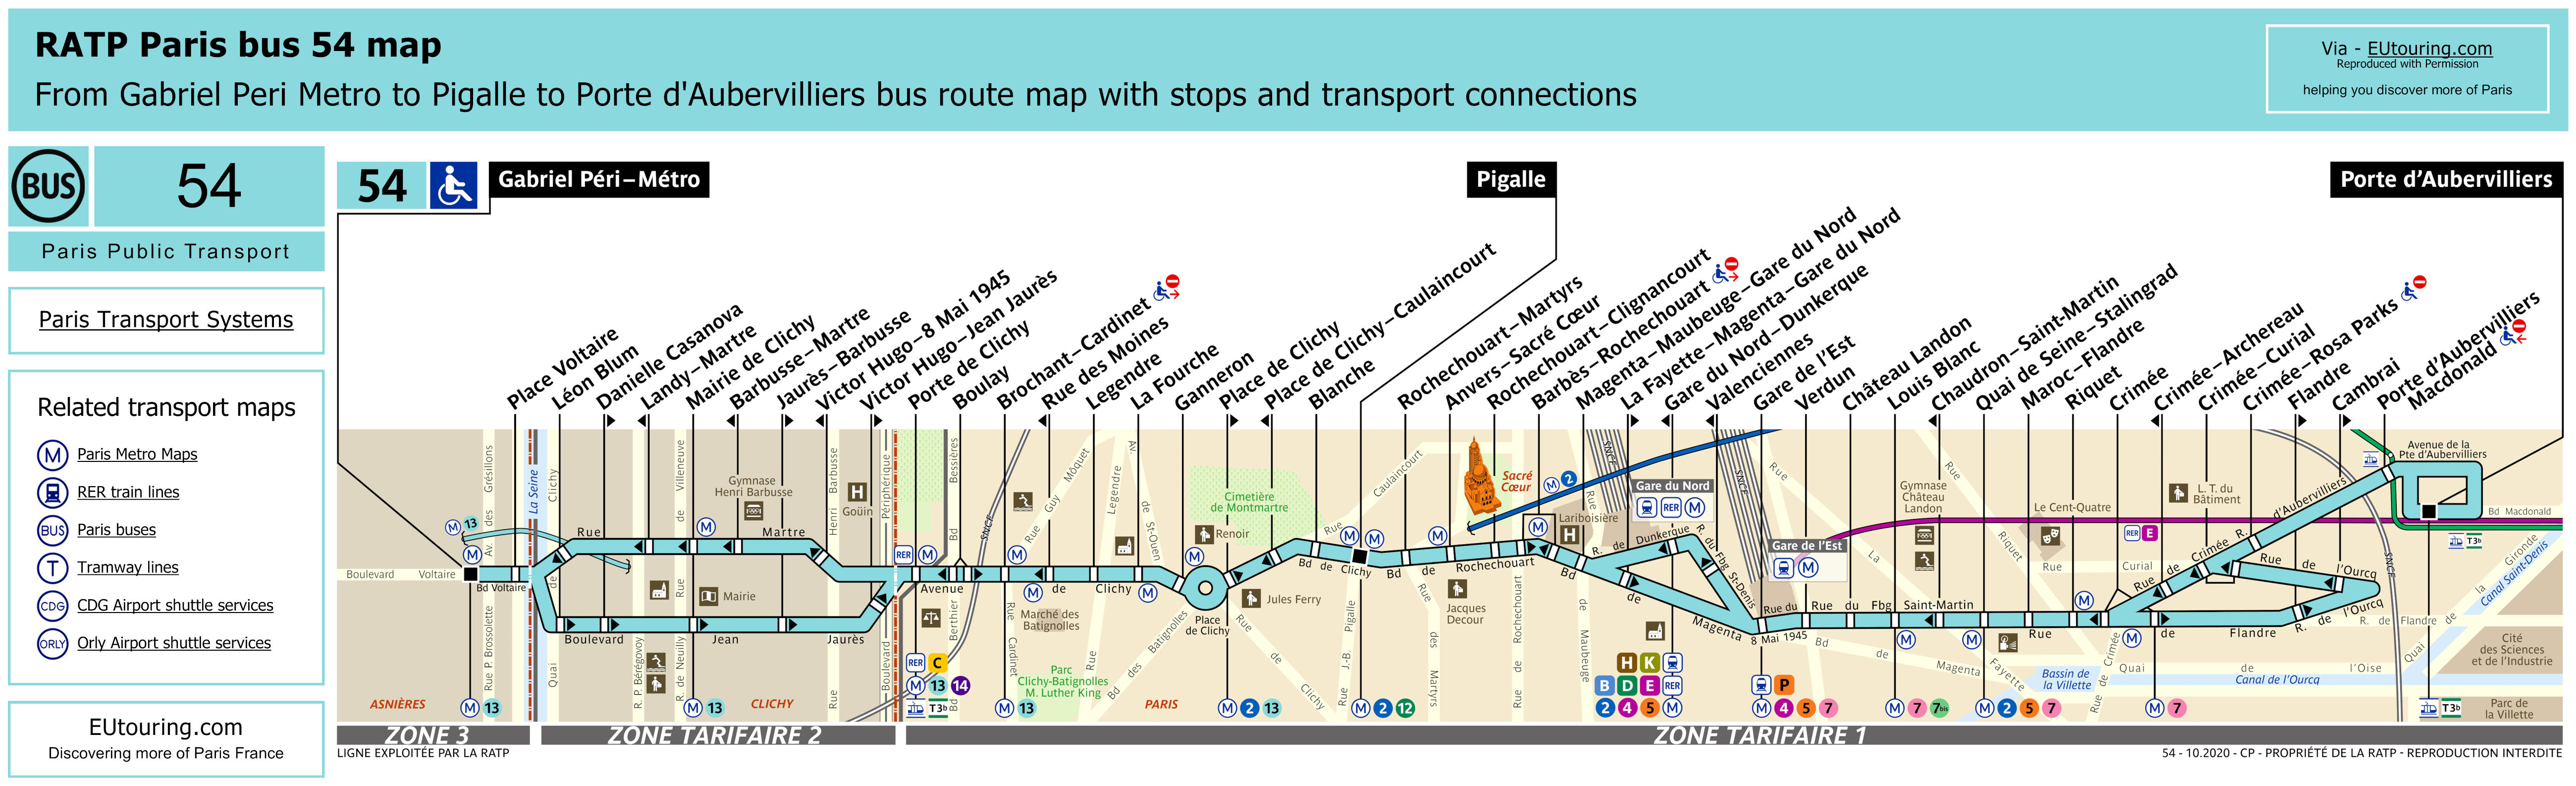 ratp route maps for paris bus lines 50 through to 59